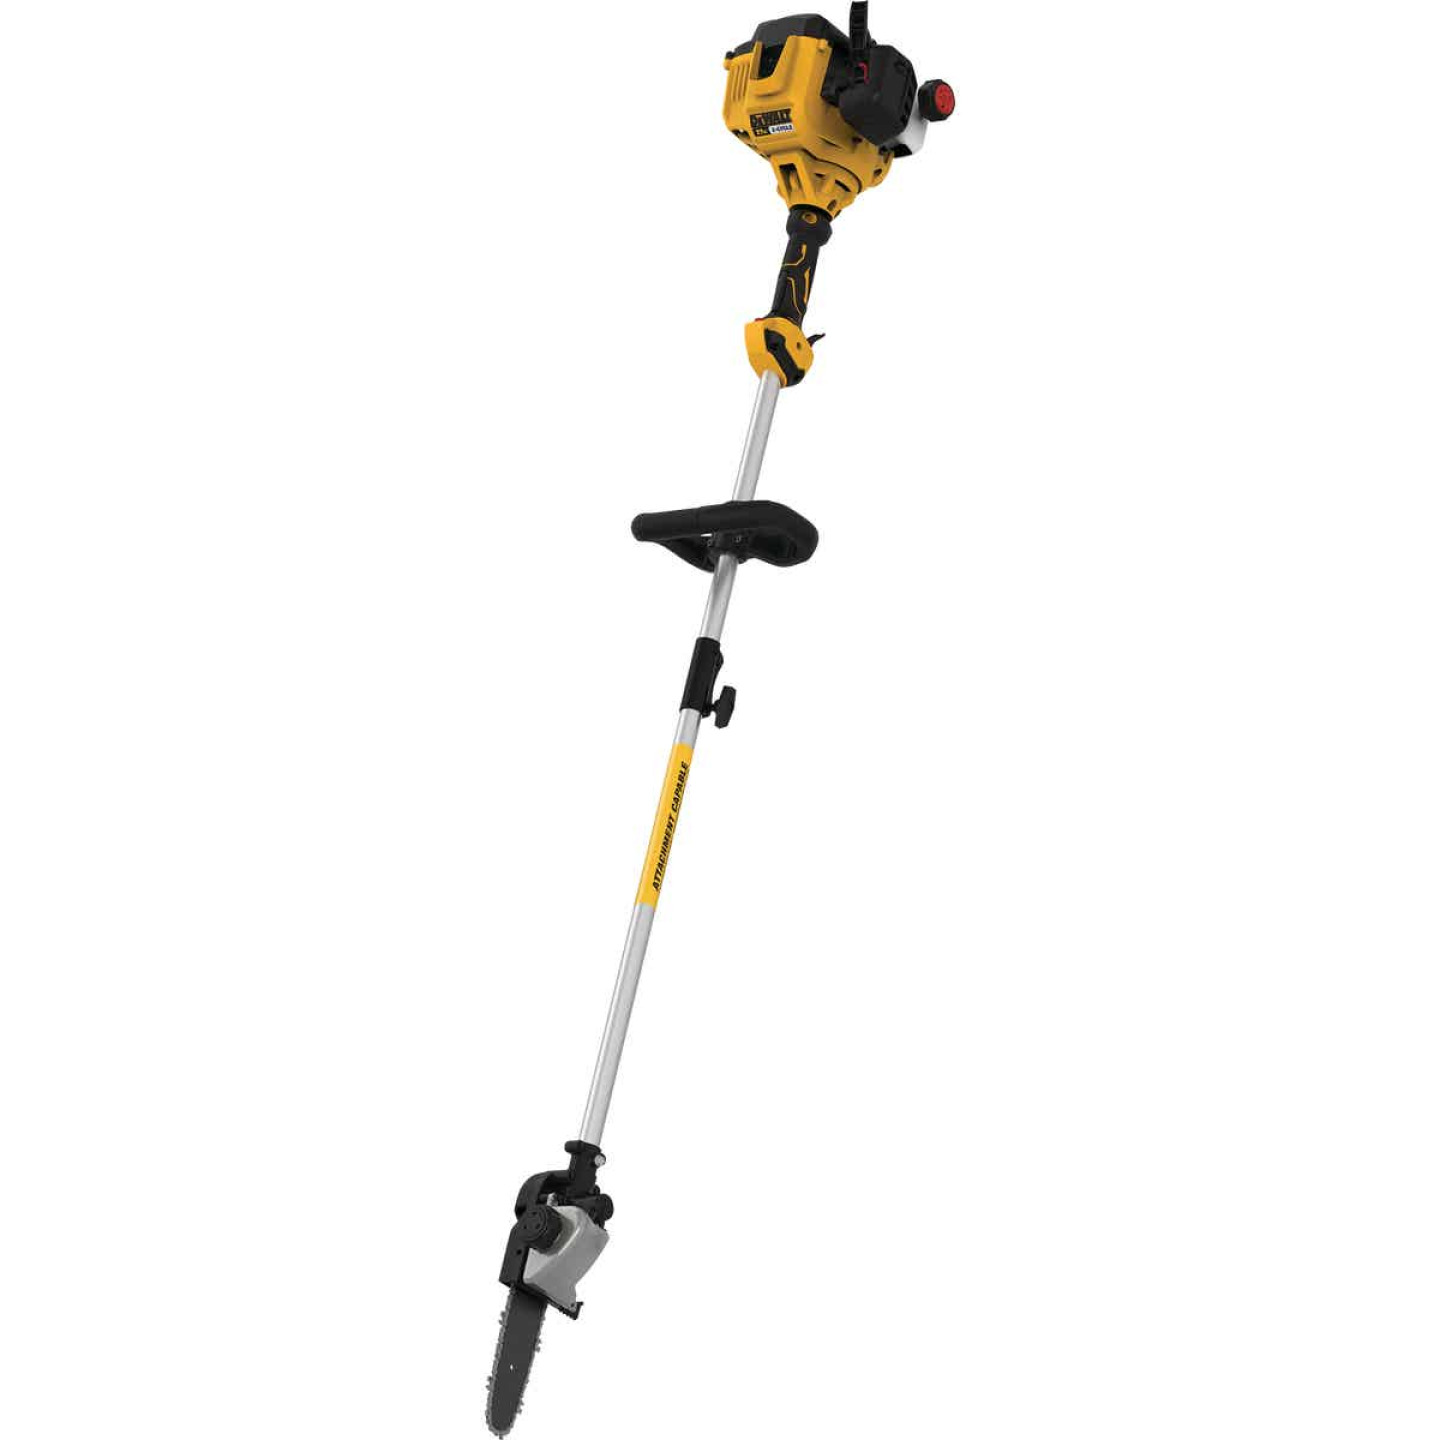 DeWalt Trimmer Plus 10 In. 27cc 2-Cycle Straight Shaft Pole Saw Image 1